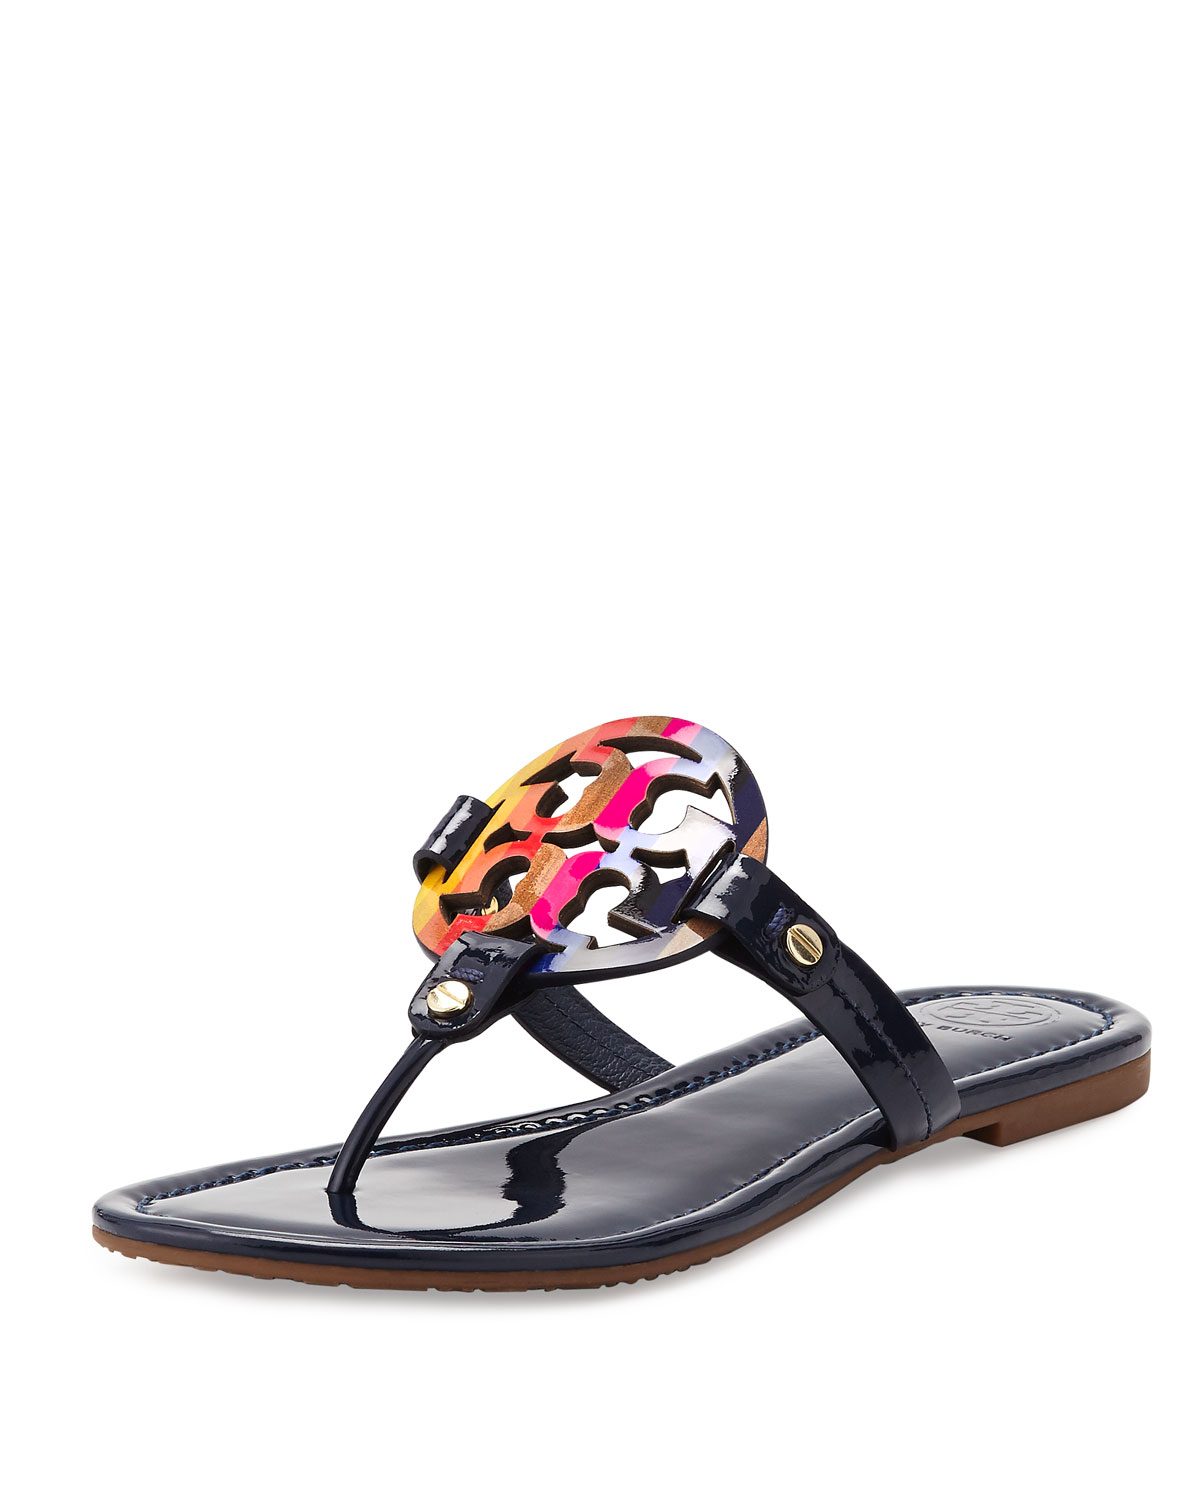 49ec7fb3c356 Lyst - Tory Burch Miller Rainbow Patent-Leather Logo Sandals in Black